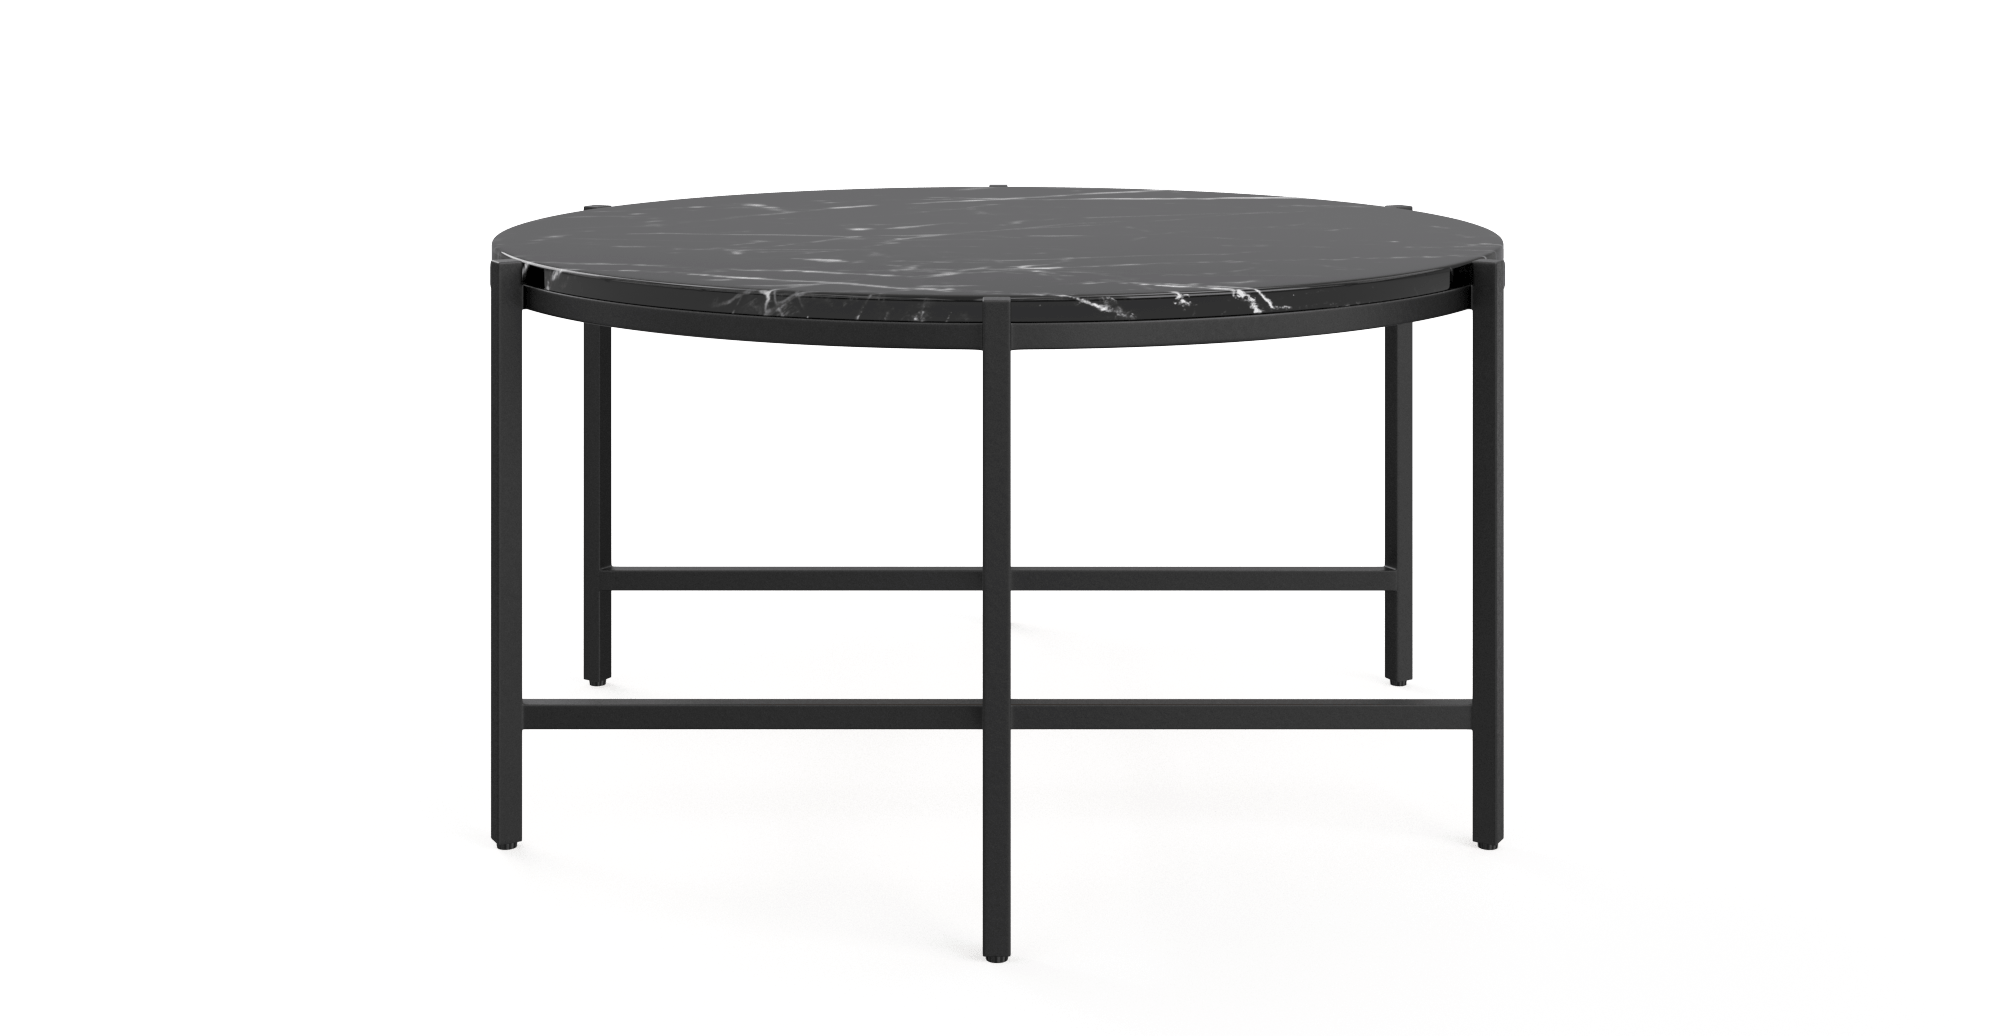 Buy baron round coffee table online in australia brosa baron round coffee table geotapseo Choice Image